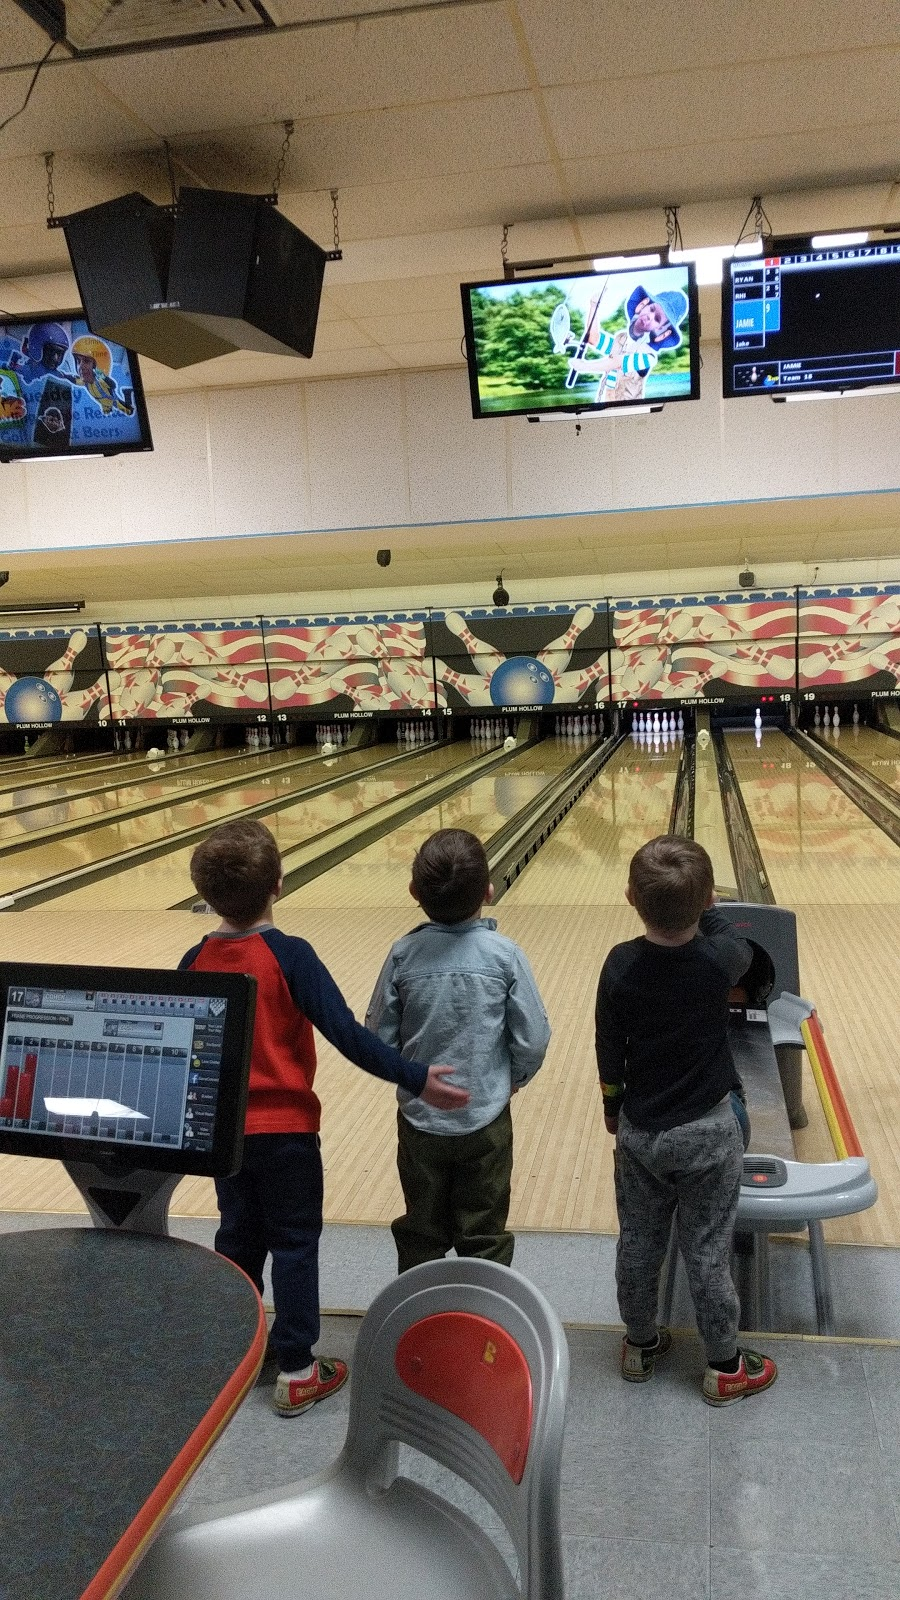 Plum Hollow Family Center - bowling alley  | Photo 6 of 10 | Address: 1933 IL-26, Dixon, IL 61021, USA | Phone: (815) 271-4101